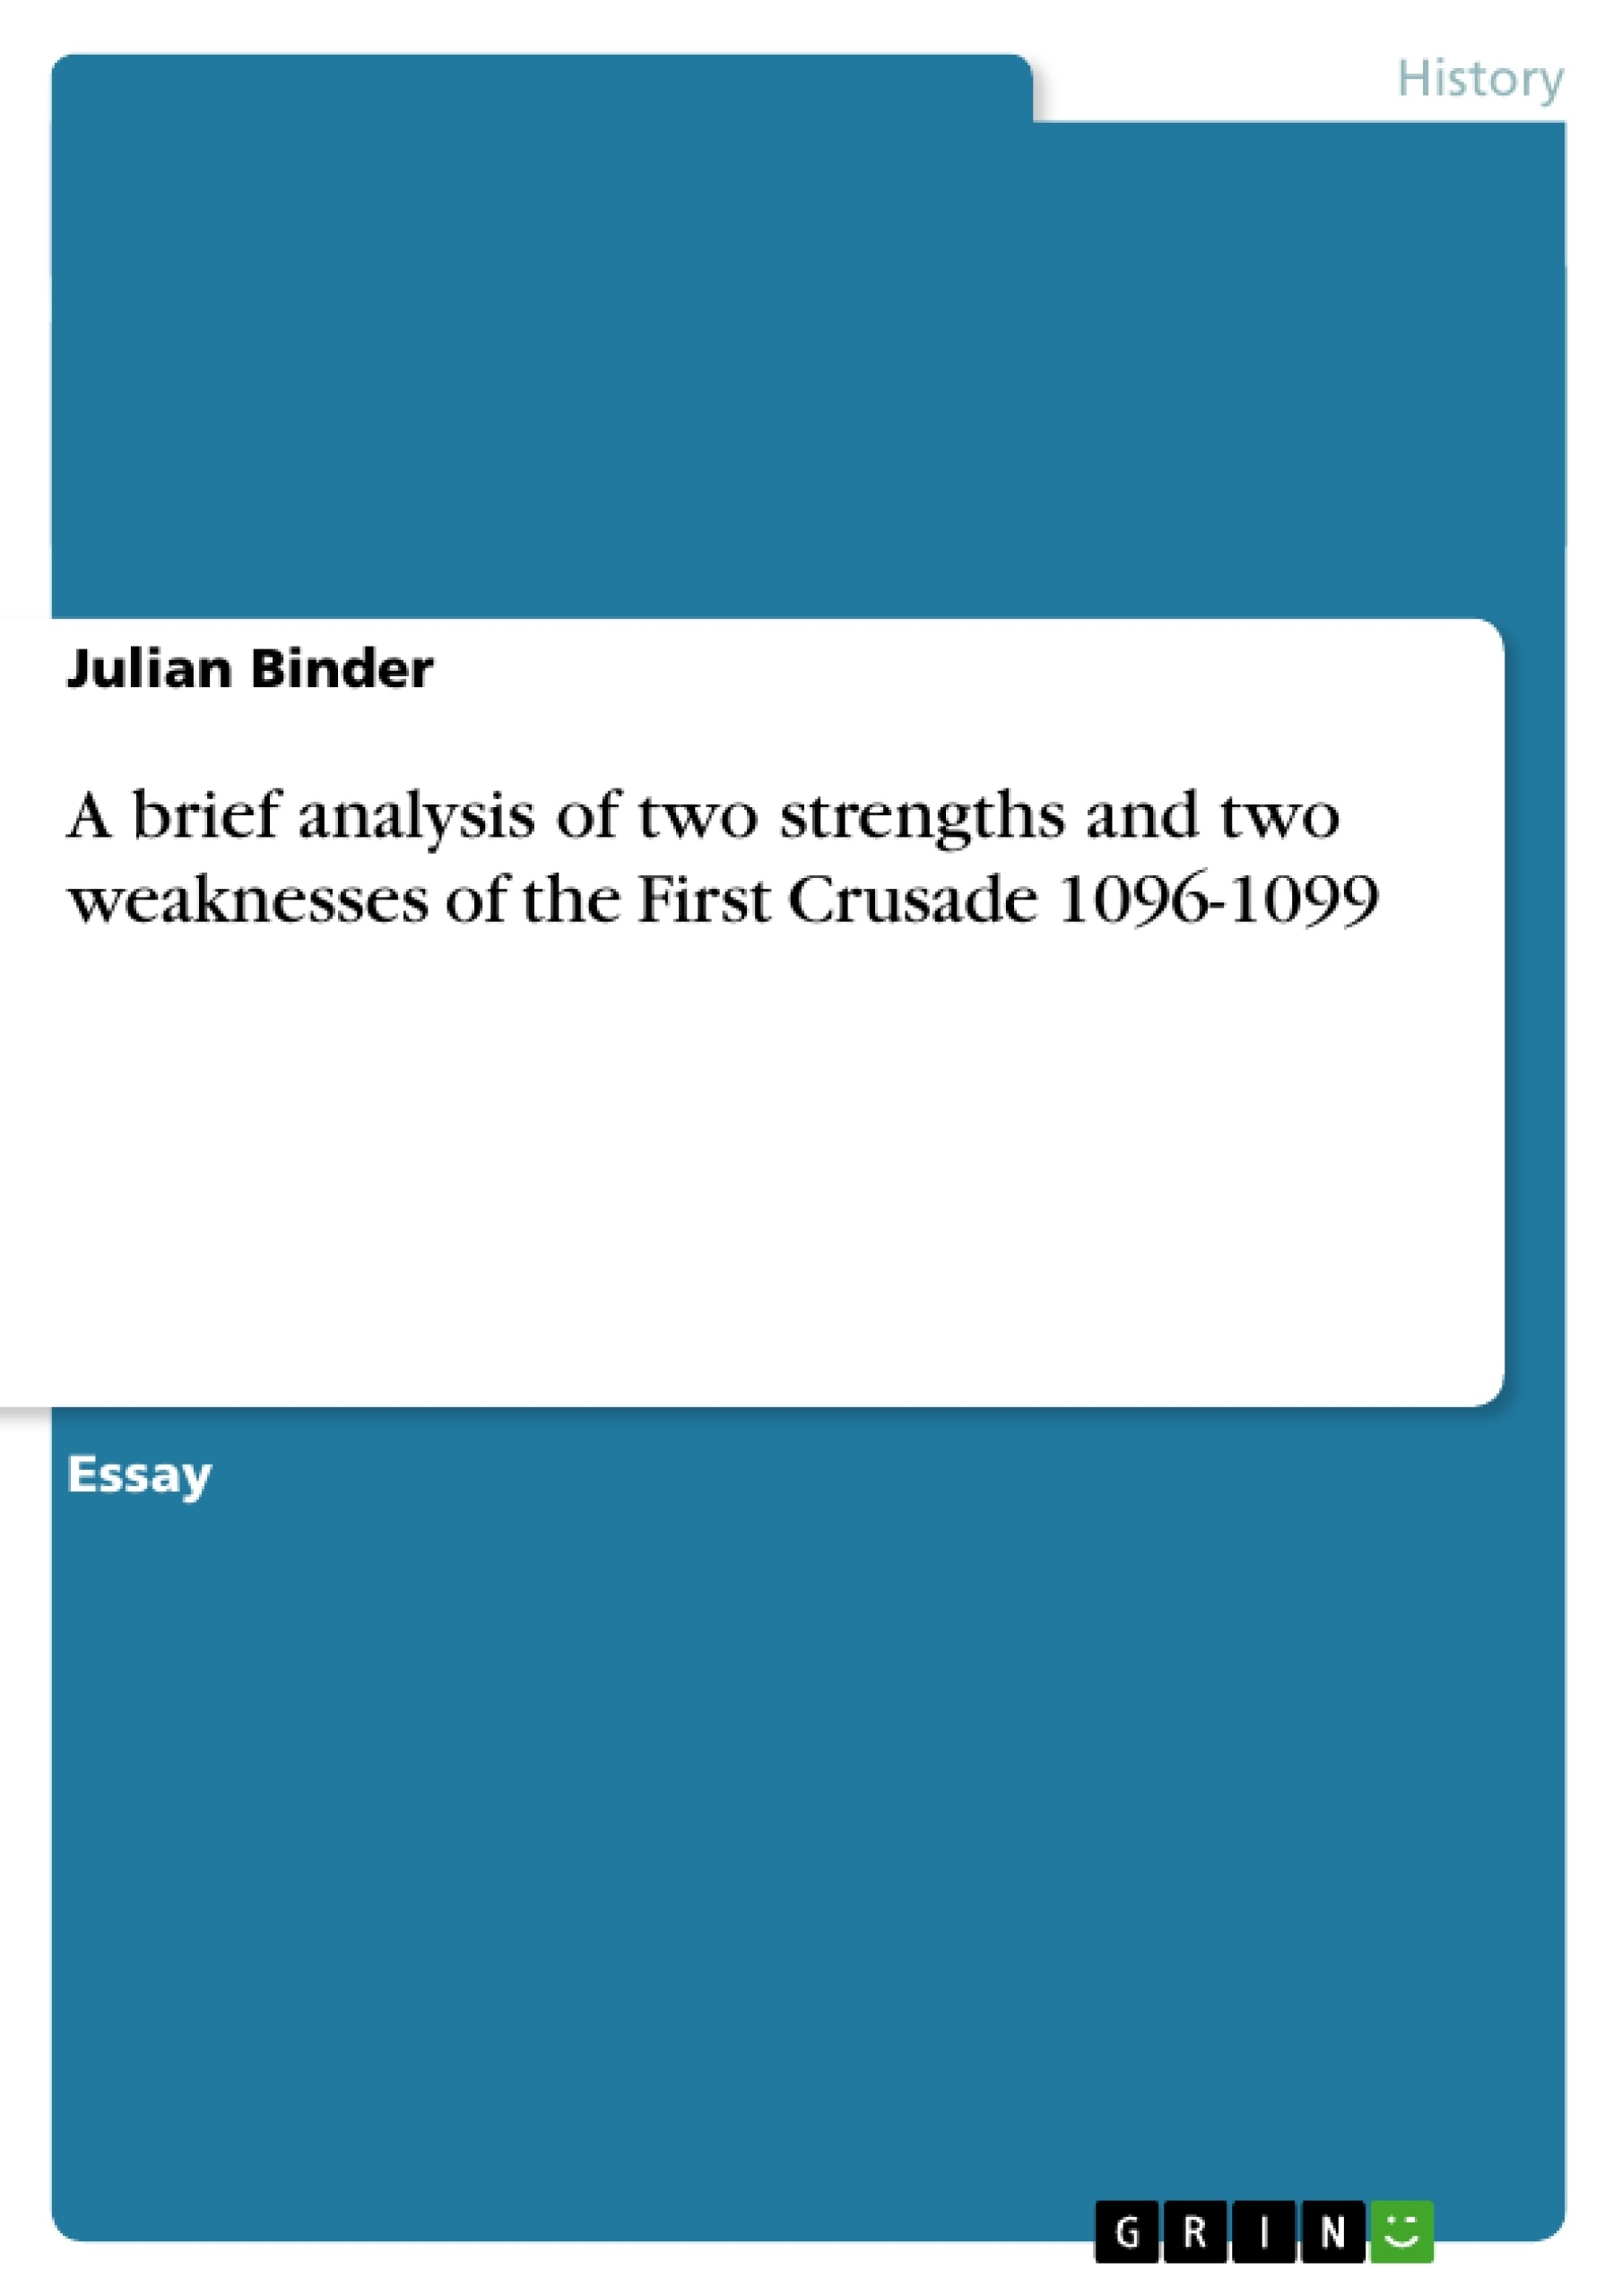 crusade essay Essays and criticism on the crusades - critical essays.